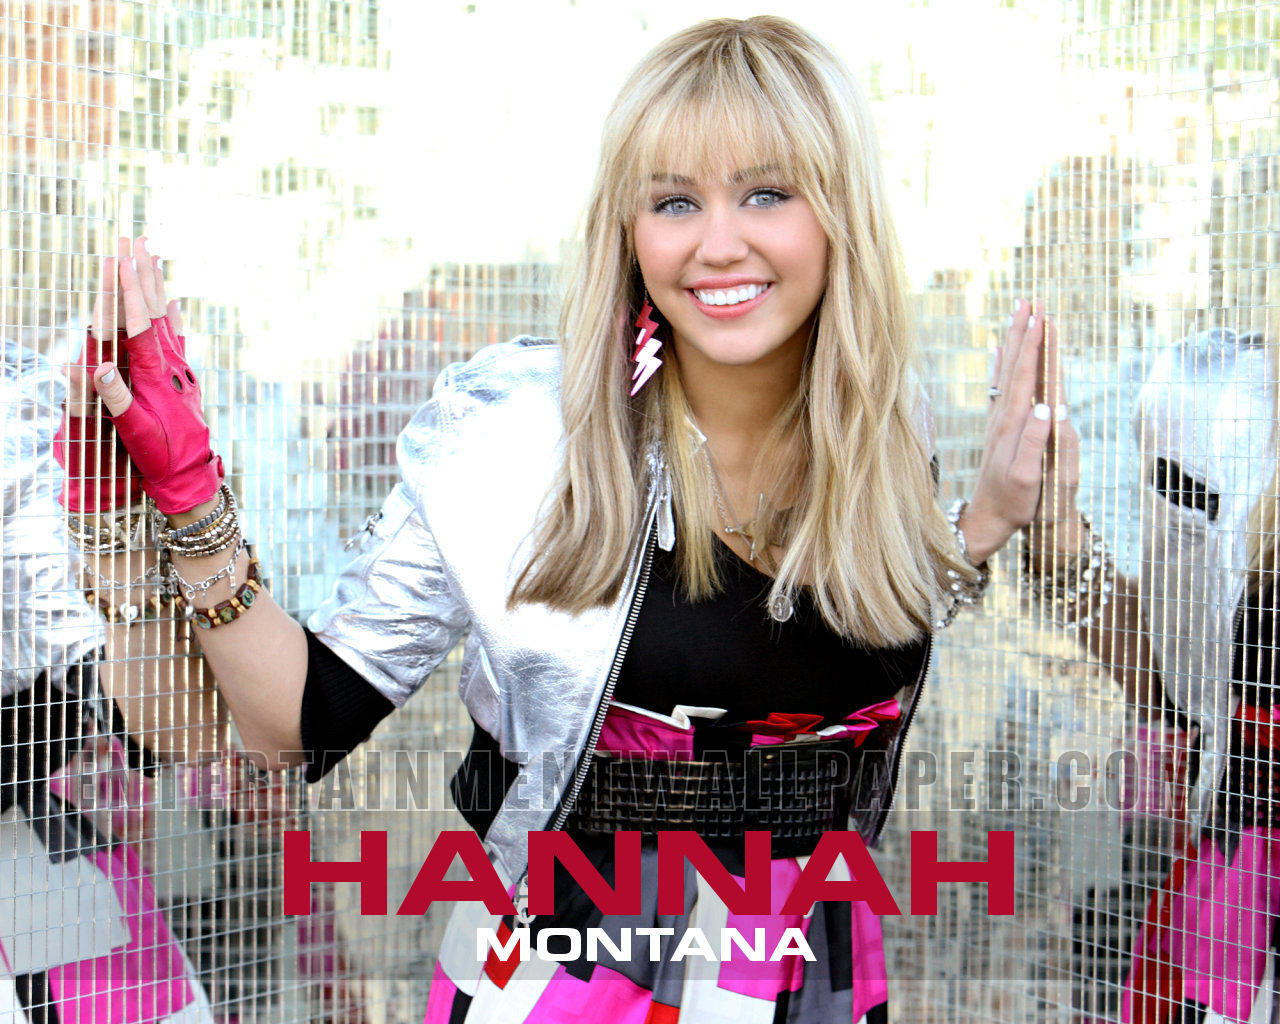 cool images hannah montana - photo #38